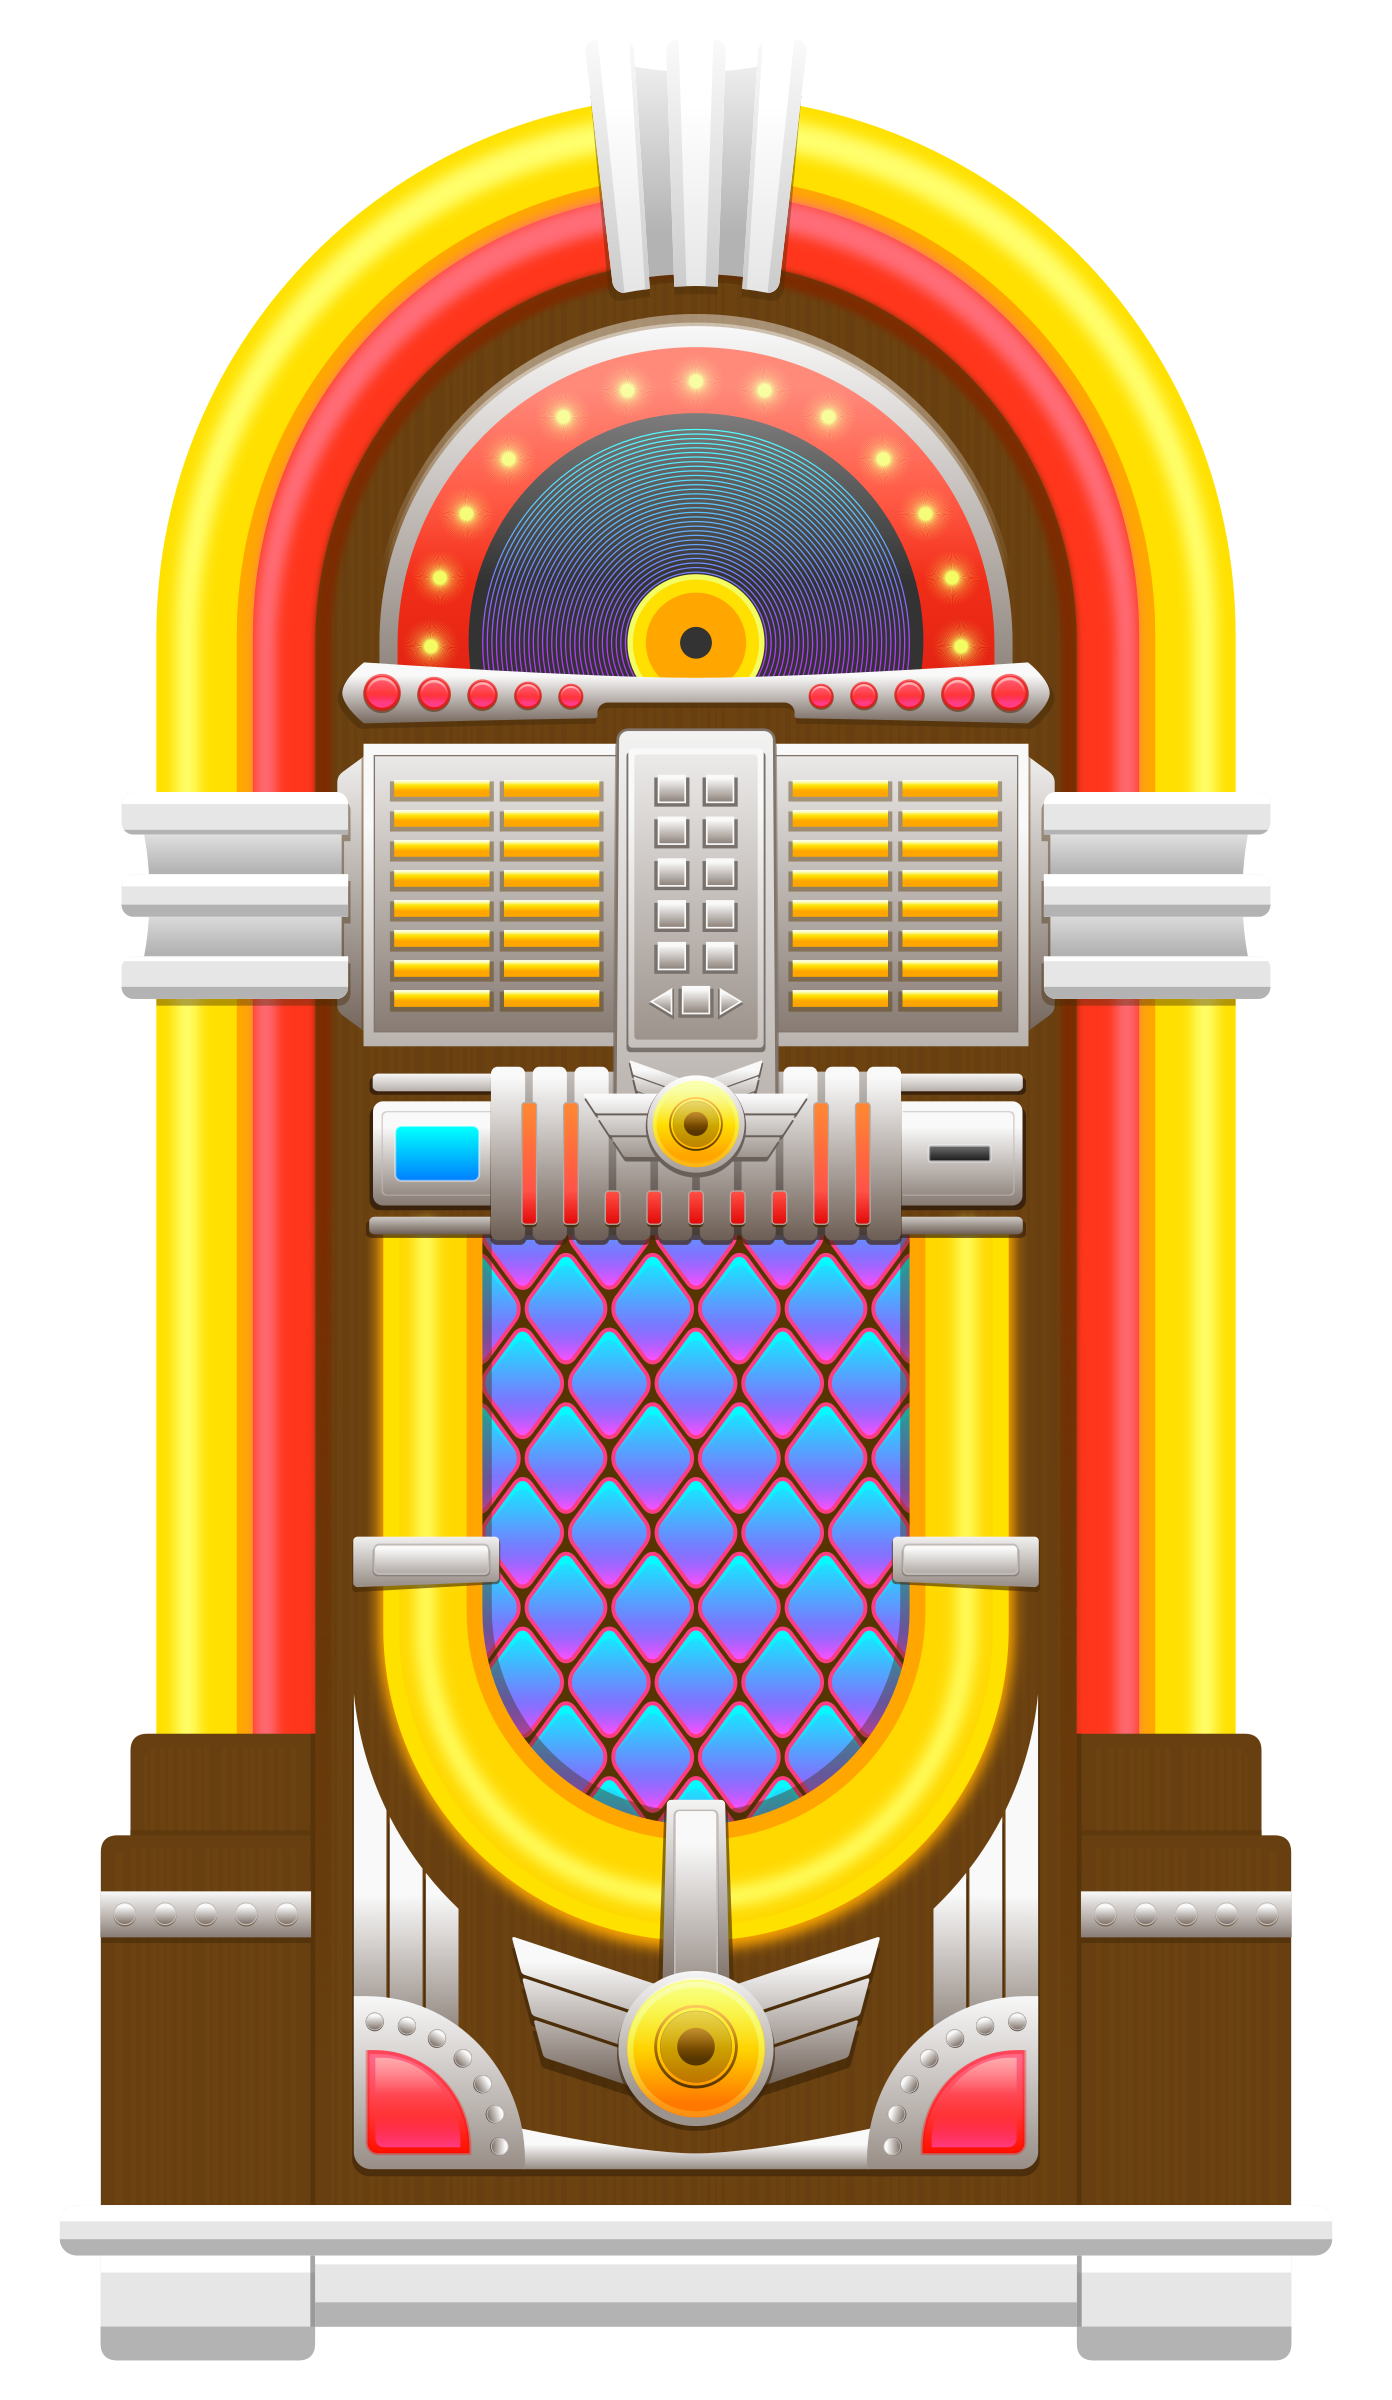 Free Jukebox Cliparts, Download Free Clip Art, Free Clip Art on.